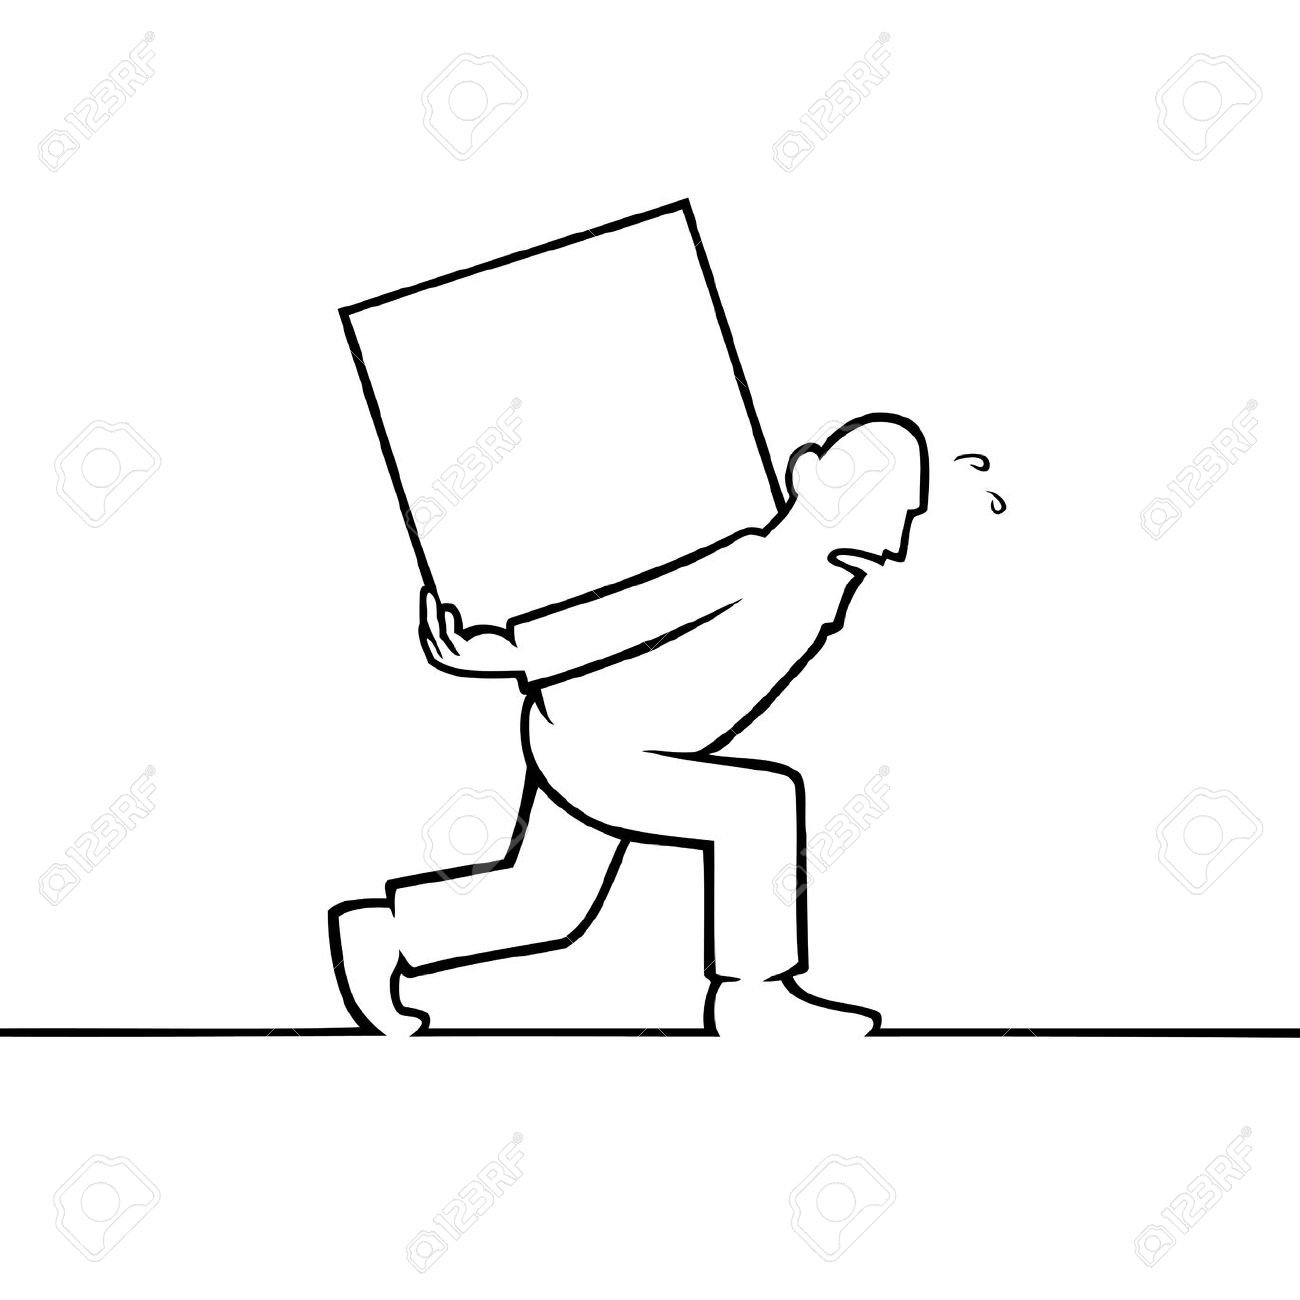 Black Line Art Illustration Of A Man Carrying A Heavy Box Royalty.